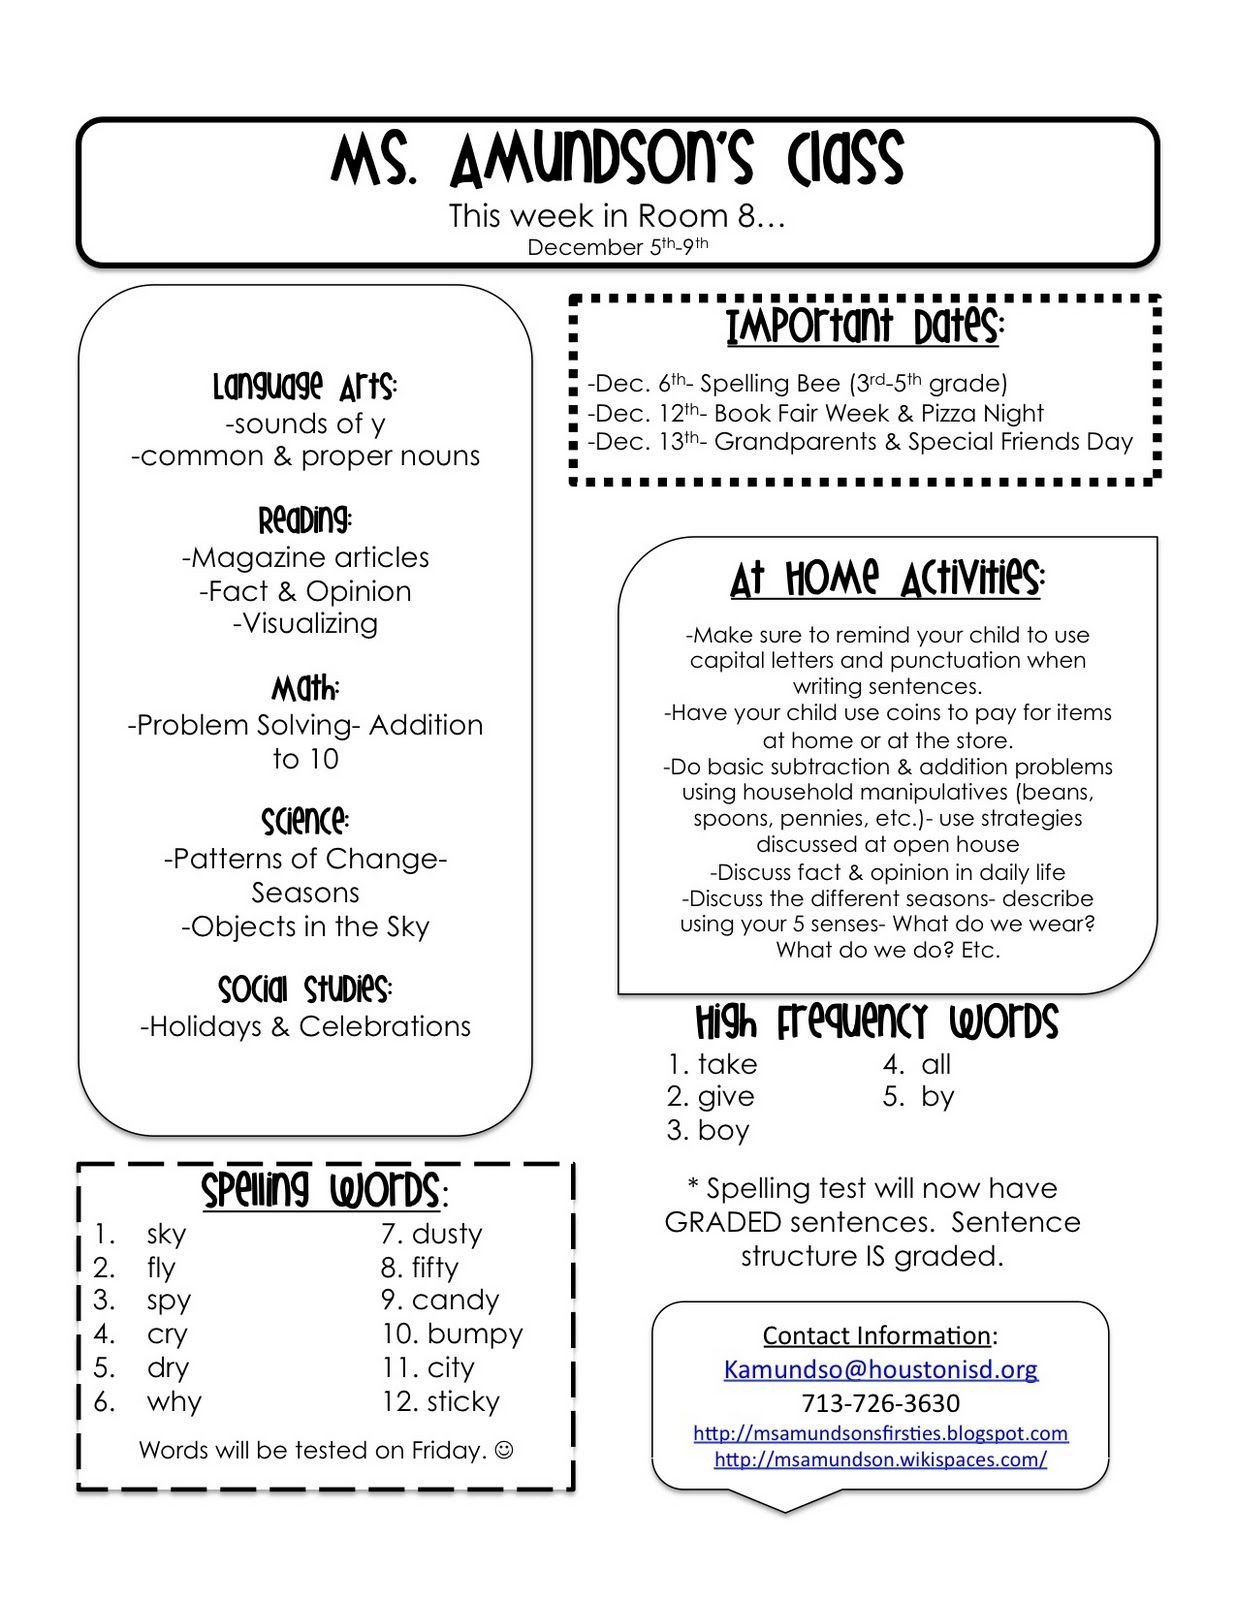 Weekly Classroom Newsletter Template Weekly Newsletter Templates for Teachers